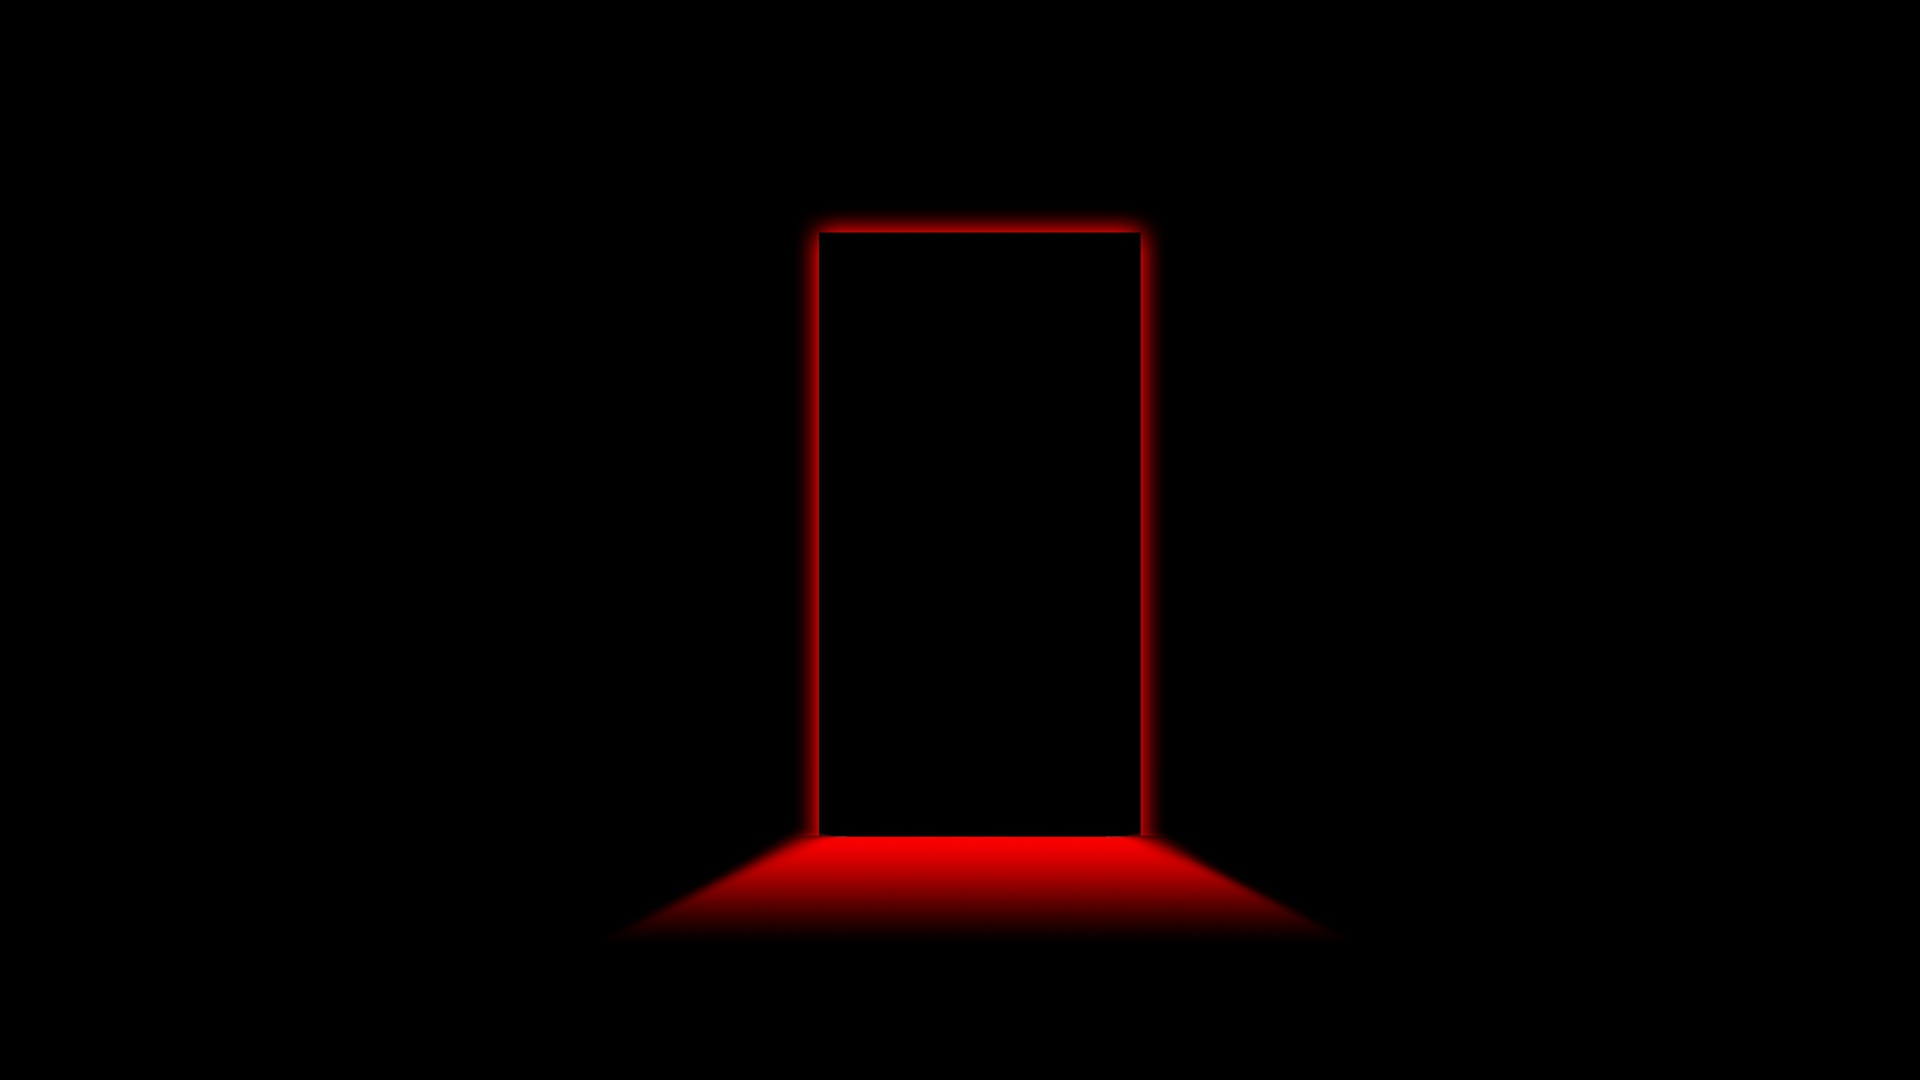 Door Light Shadow Black Red Wallpaper   MixHD wallpapers 1920x1080